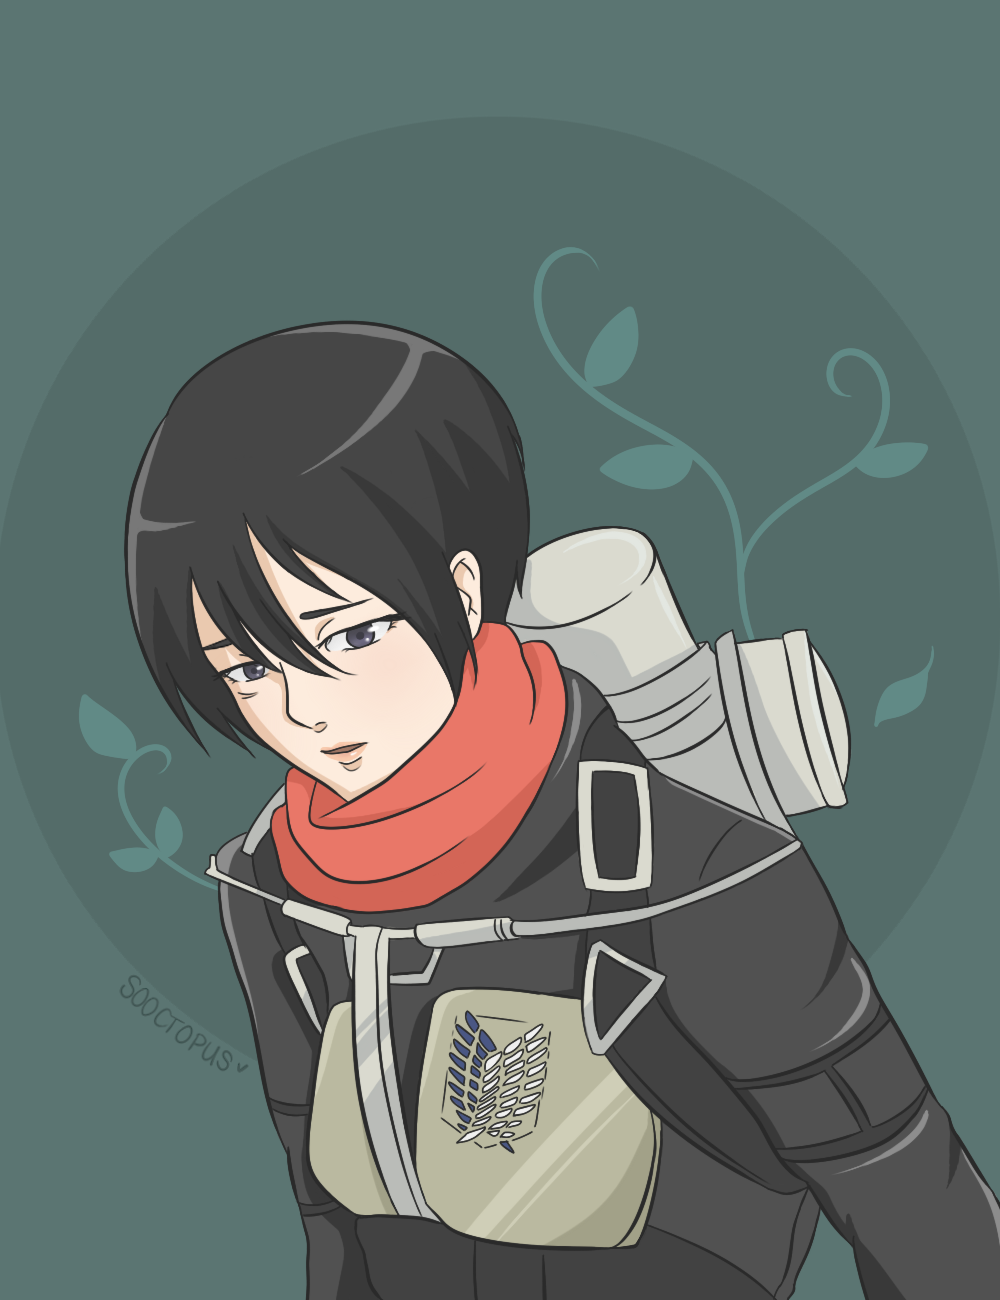 Pin on Mikasa Ackerman